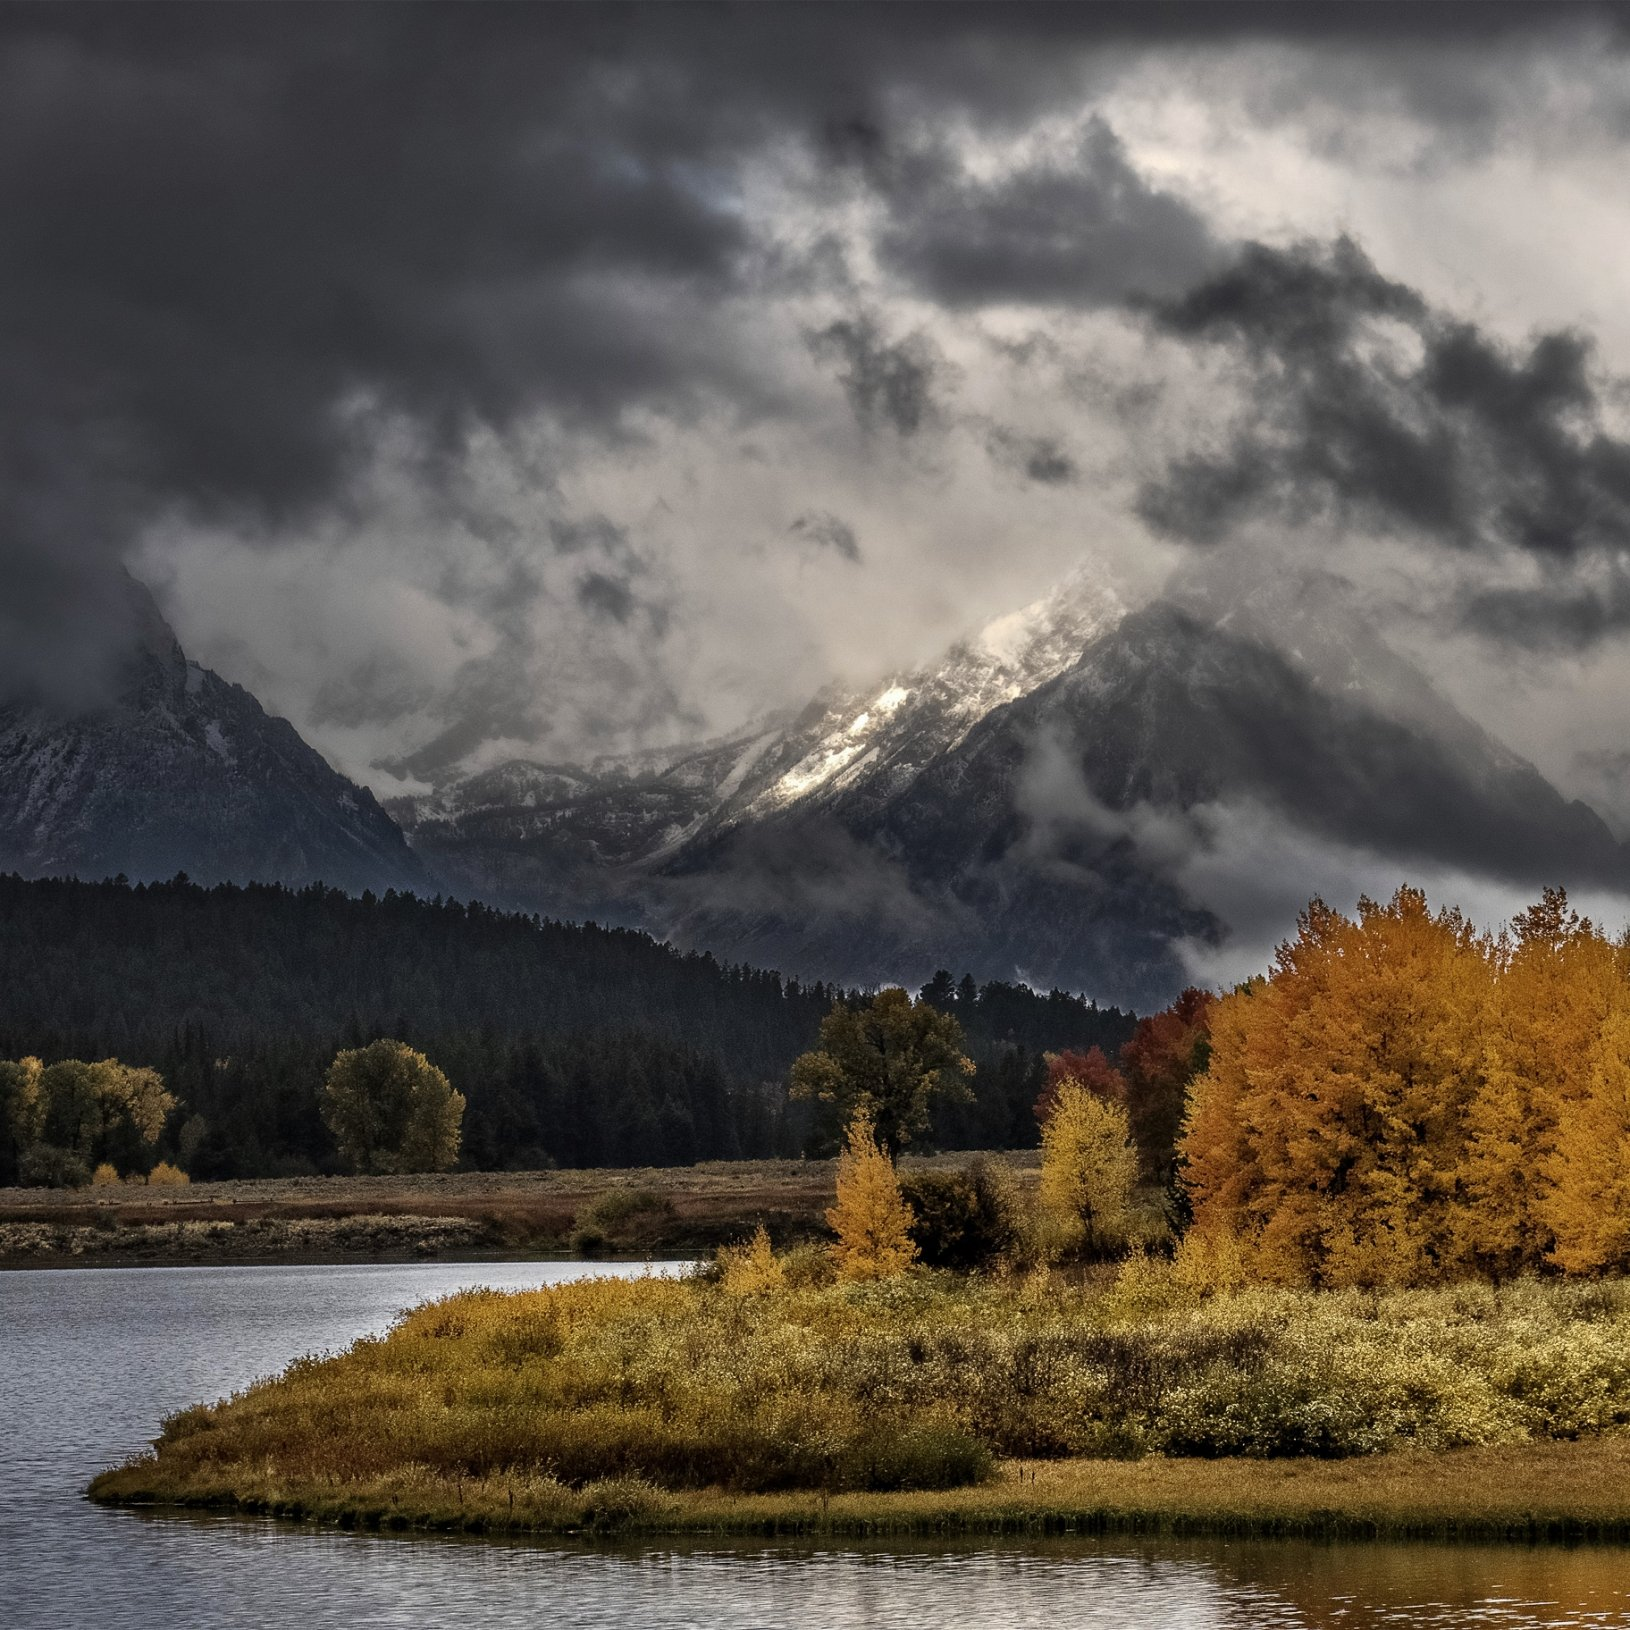 Clearing storm at Oxbow Bend Turn, Grand Teton National Park